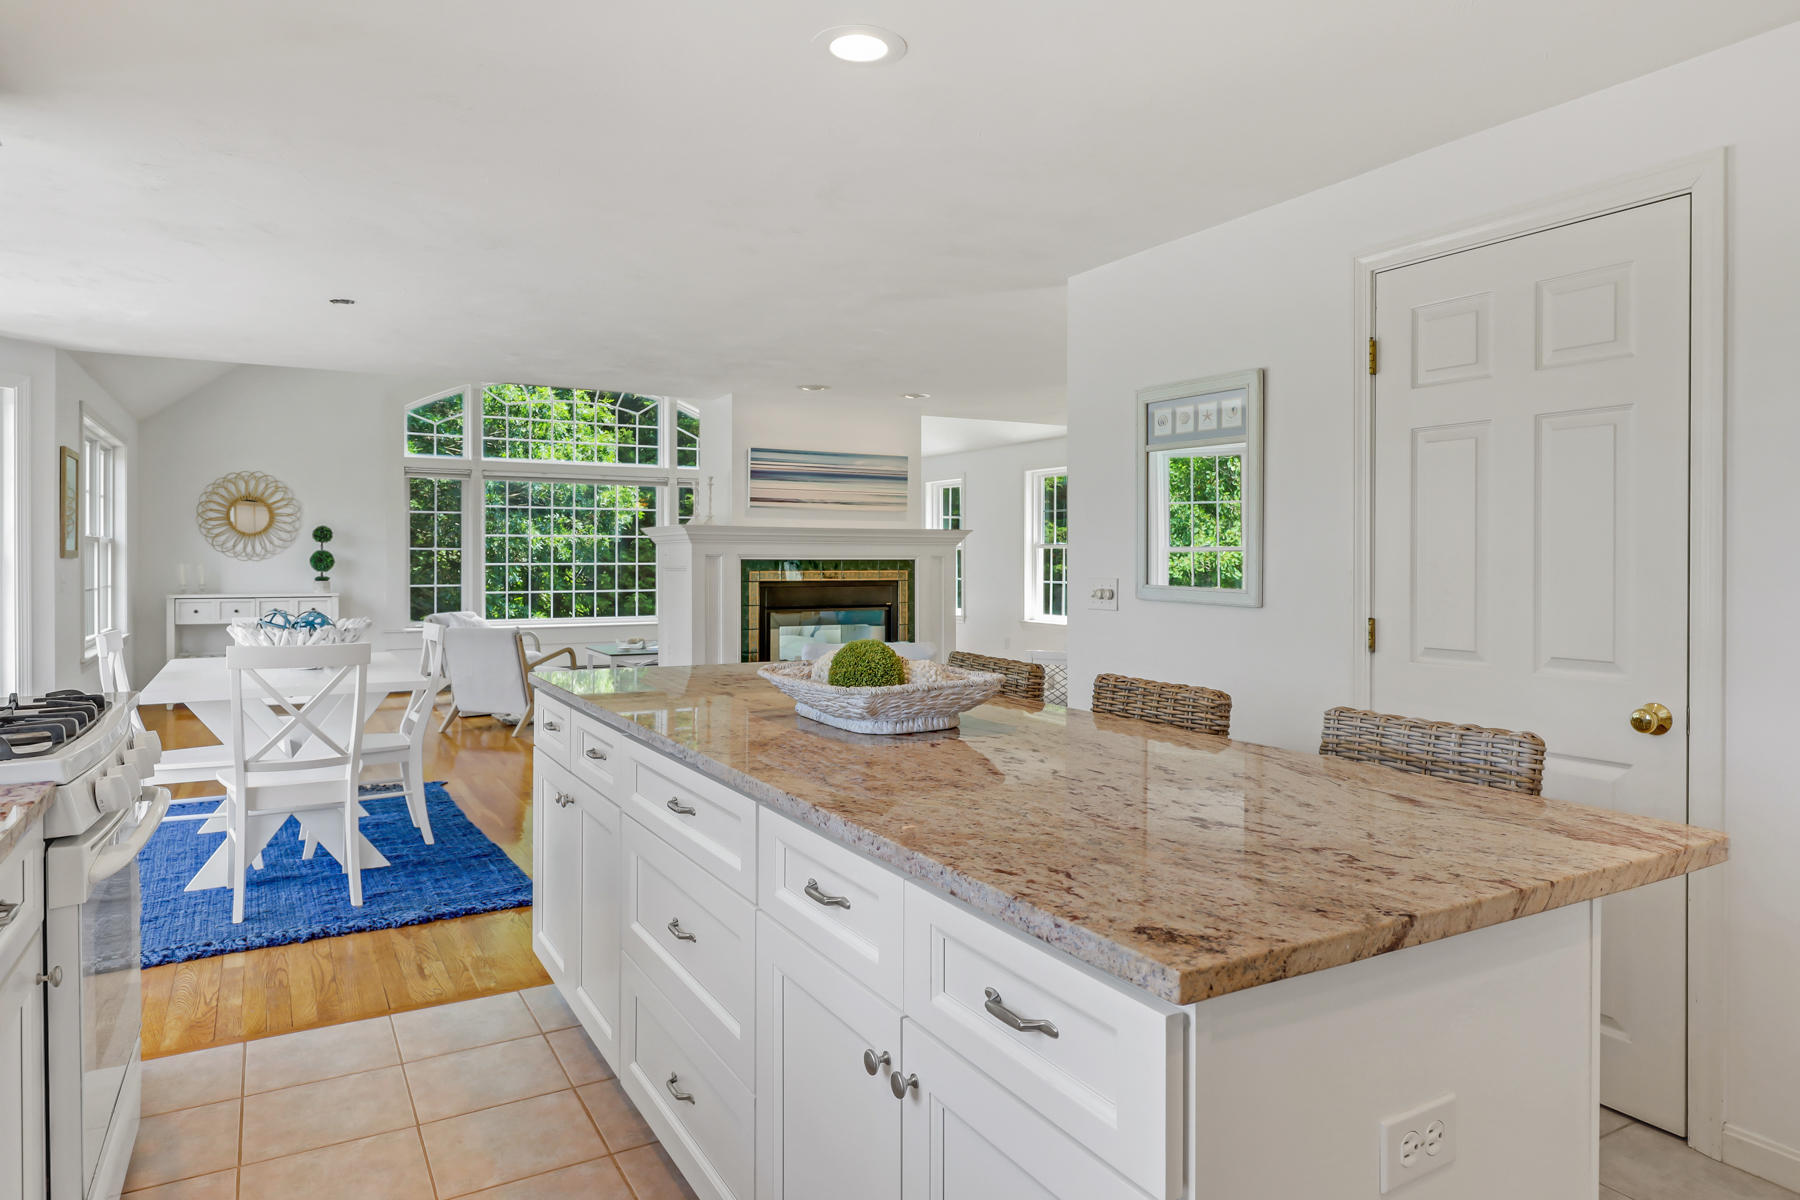 48 Beach Road, Orleans MA, 02653 sales details